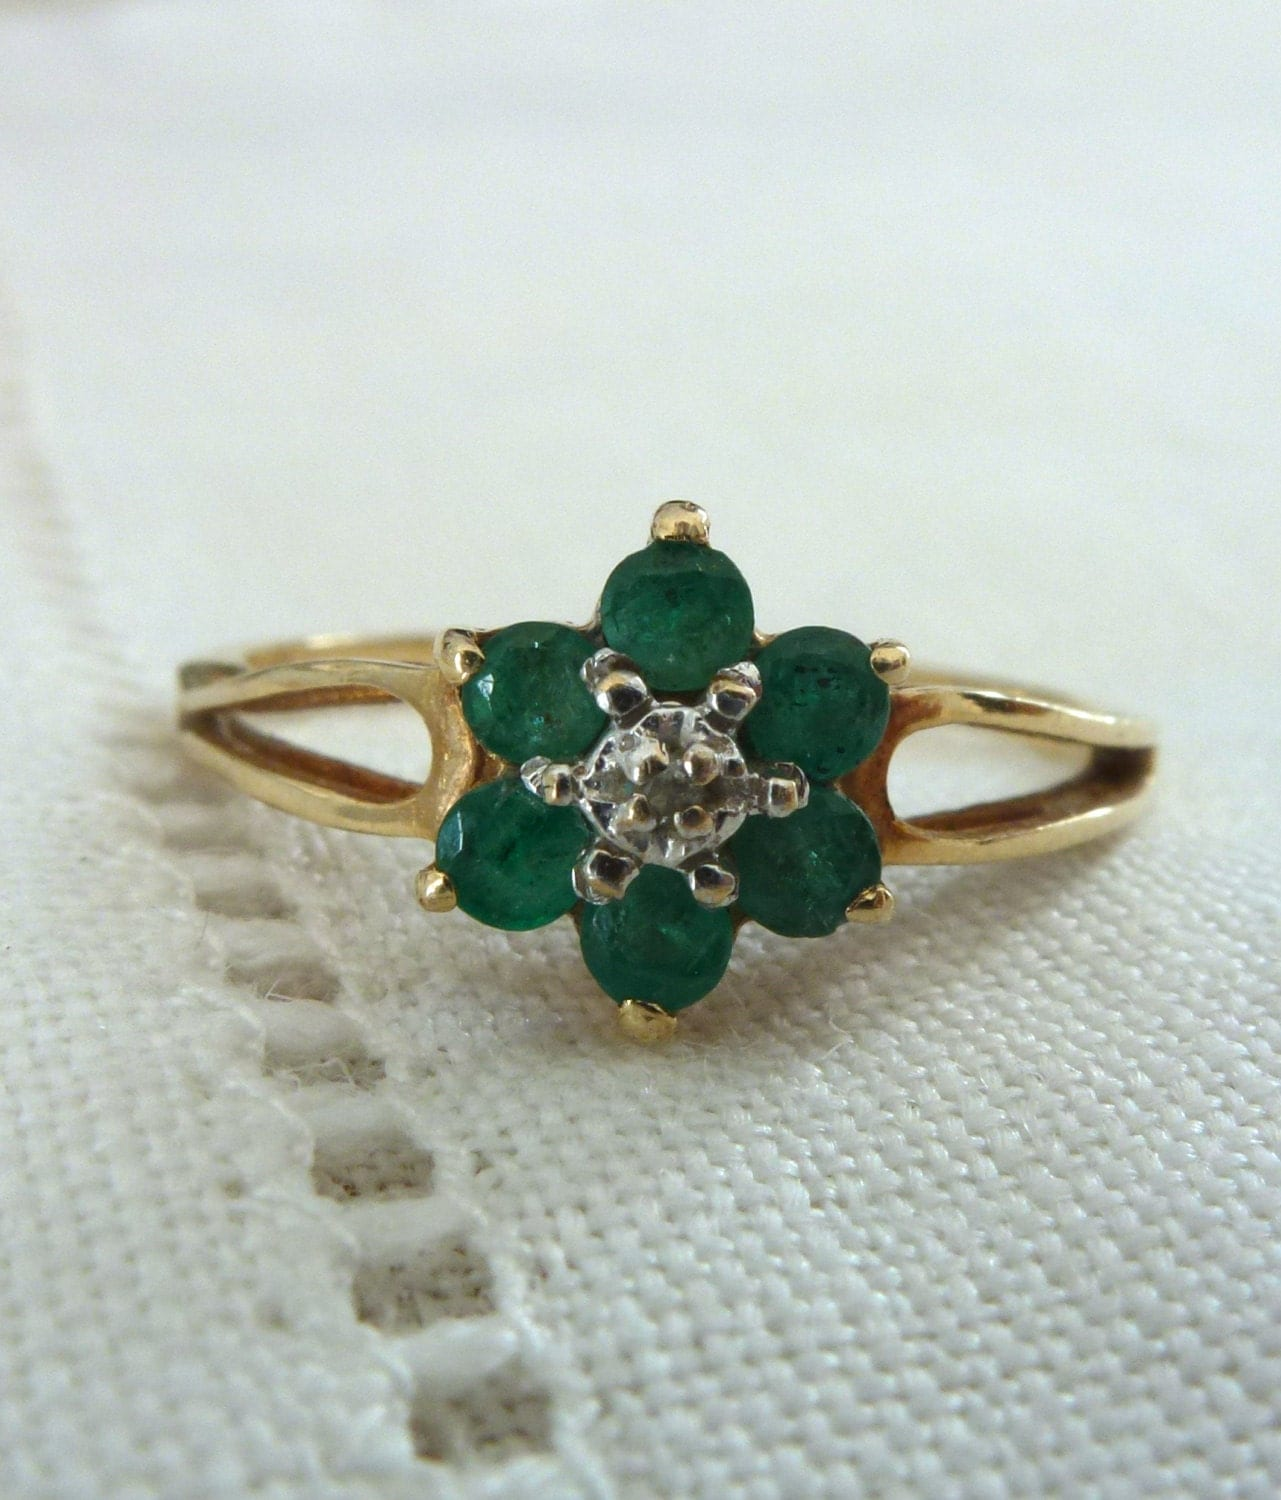 a emerald and flower ring in 14kt yellow gold